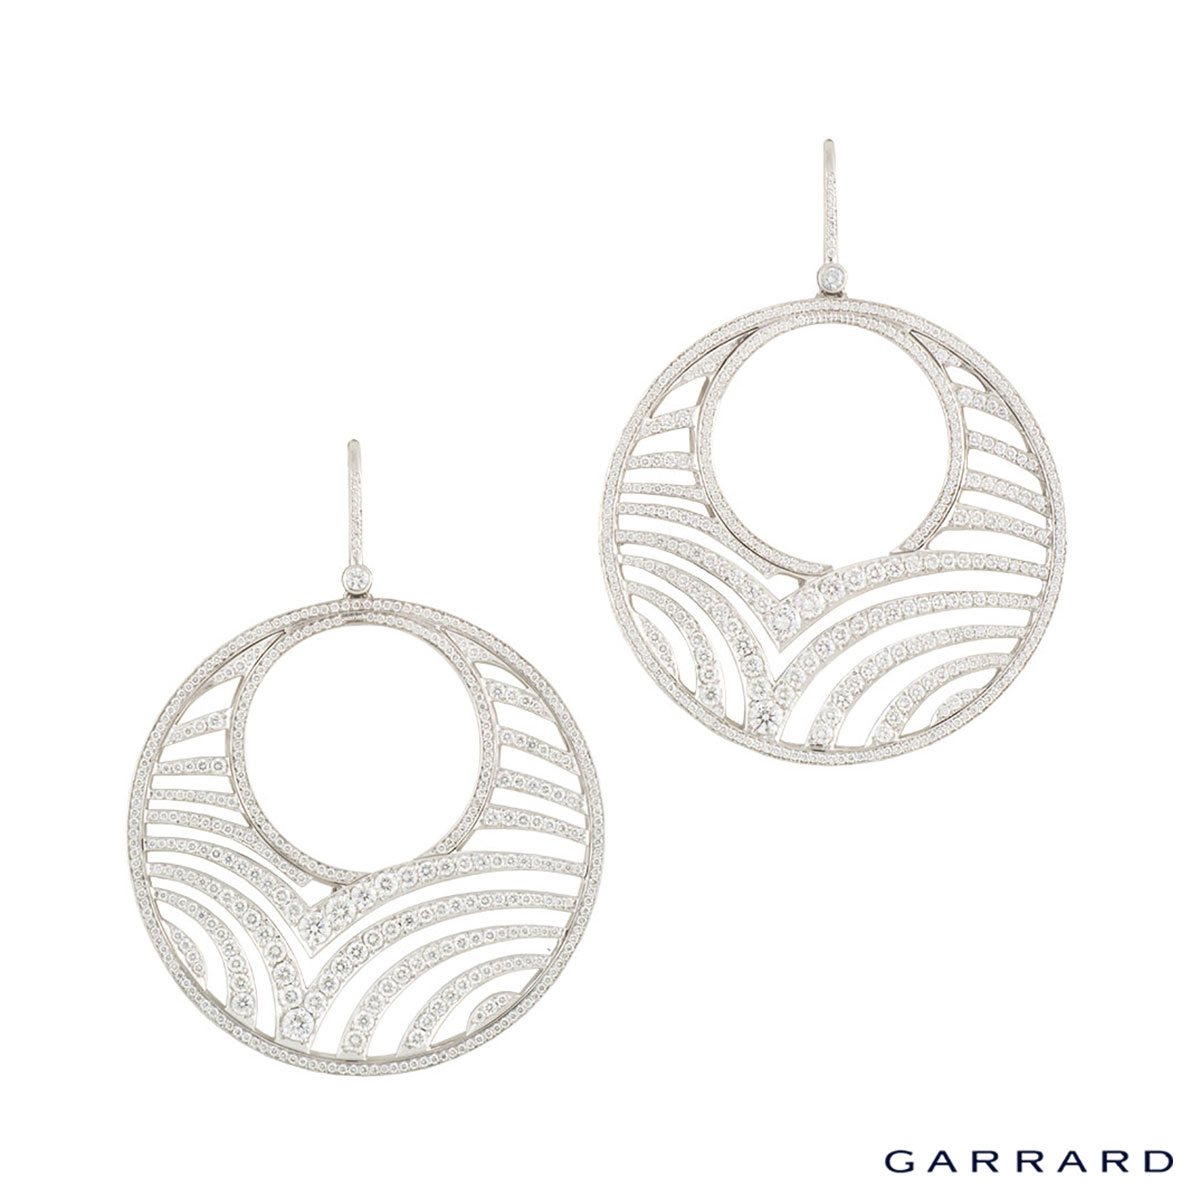 Garrard White Gold Diamond Hoop Earrings